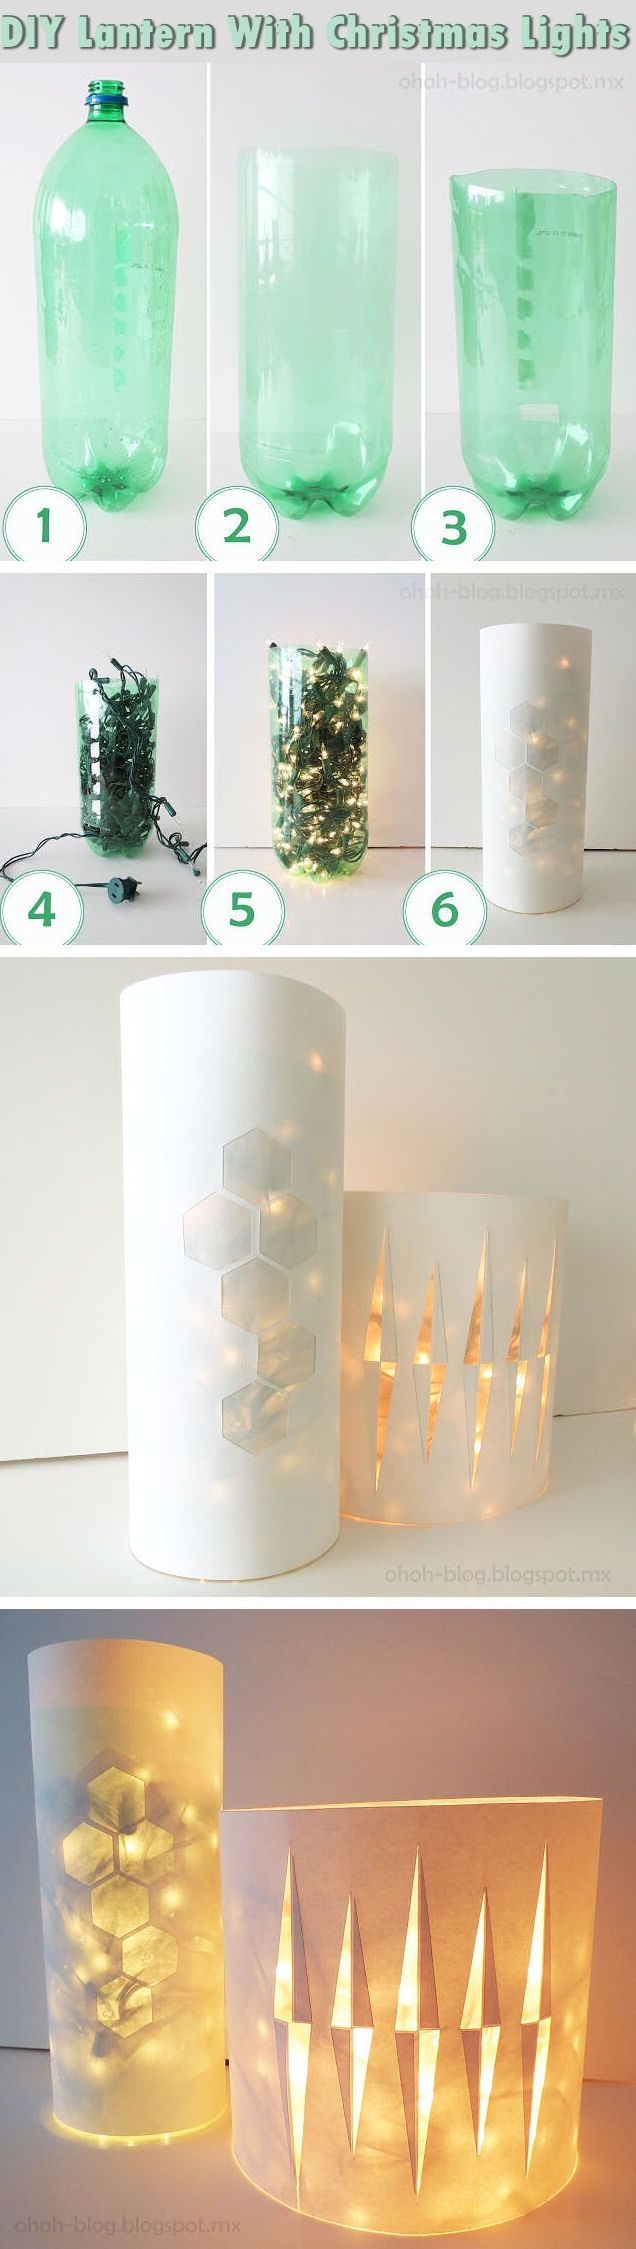 DIY Lantern With Christmas Lights Pictures, Photos, and Images for Facebook, Tumblr, Pinterest, and Twitter